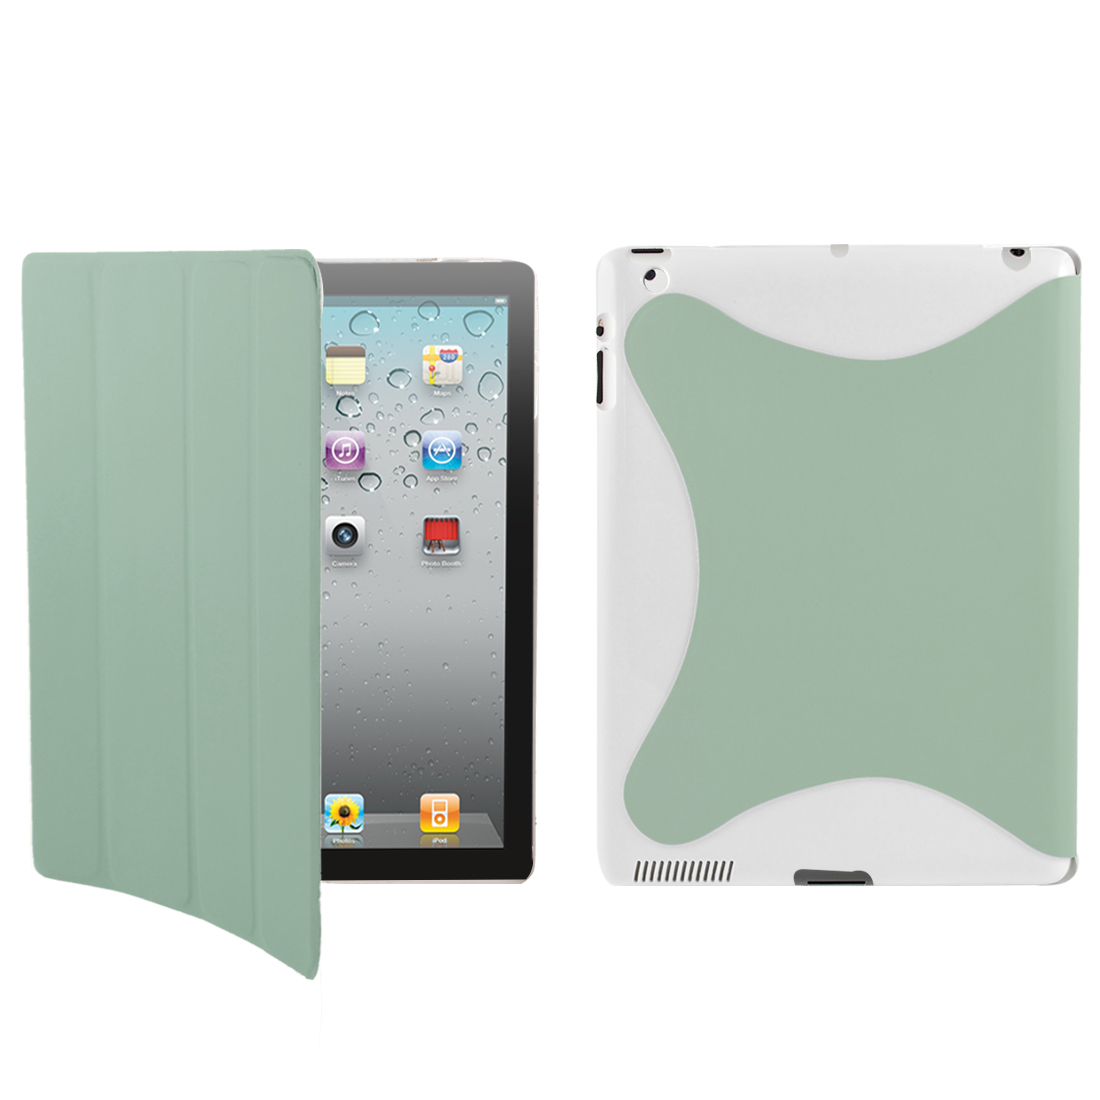 Pale Green PU Leather Stand Case Smart Cover Protector for iPad 2